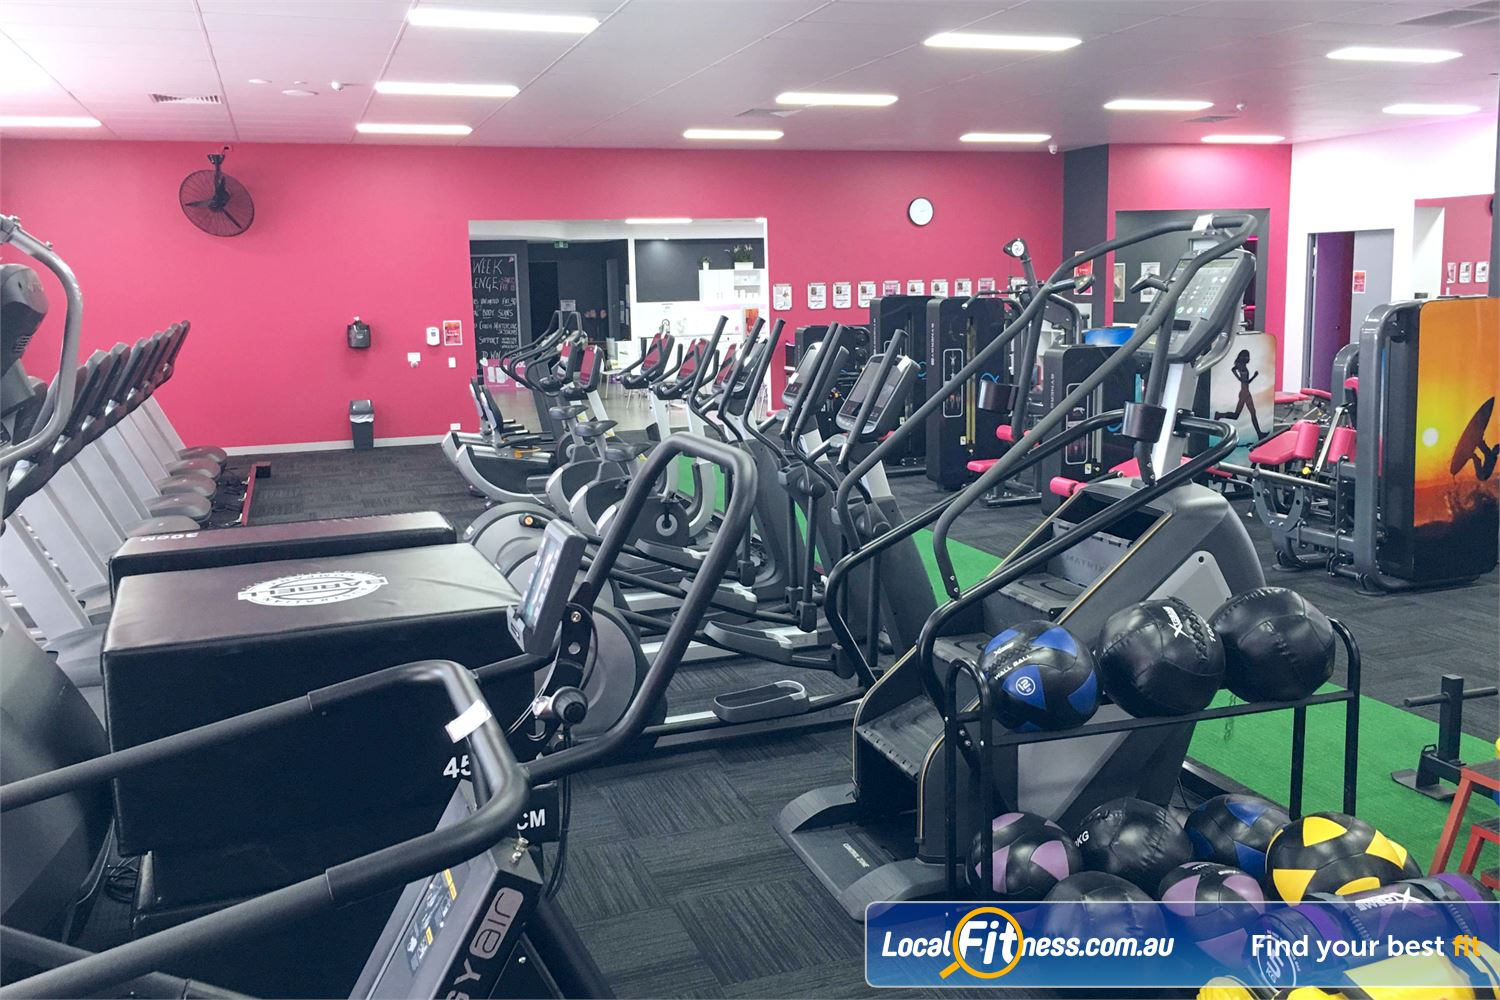 Fernwood Fitness Near Varsity Lakes Vary your cardio with cross-trainers, treadmills, climbmills and more.